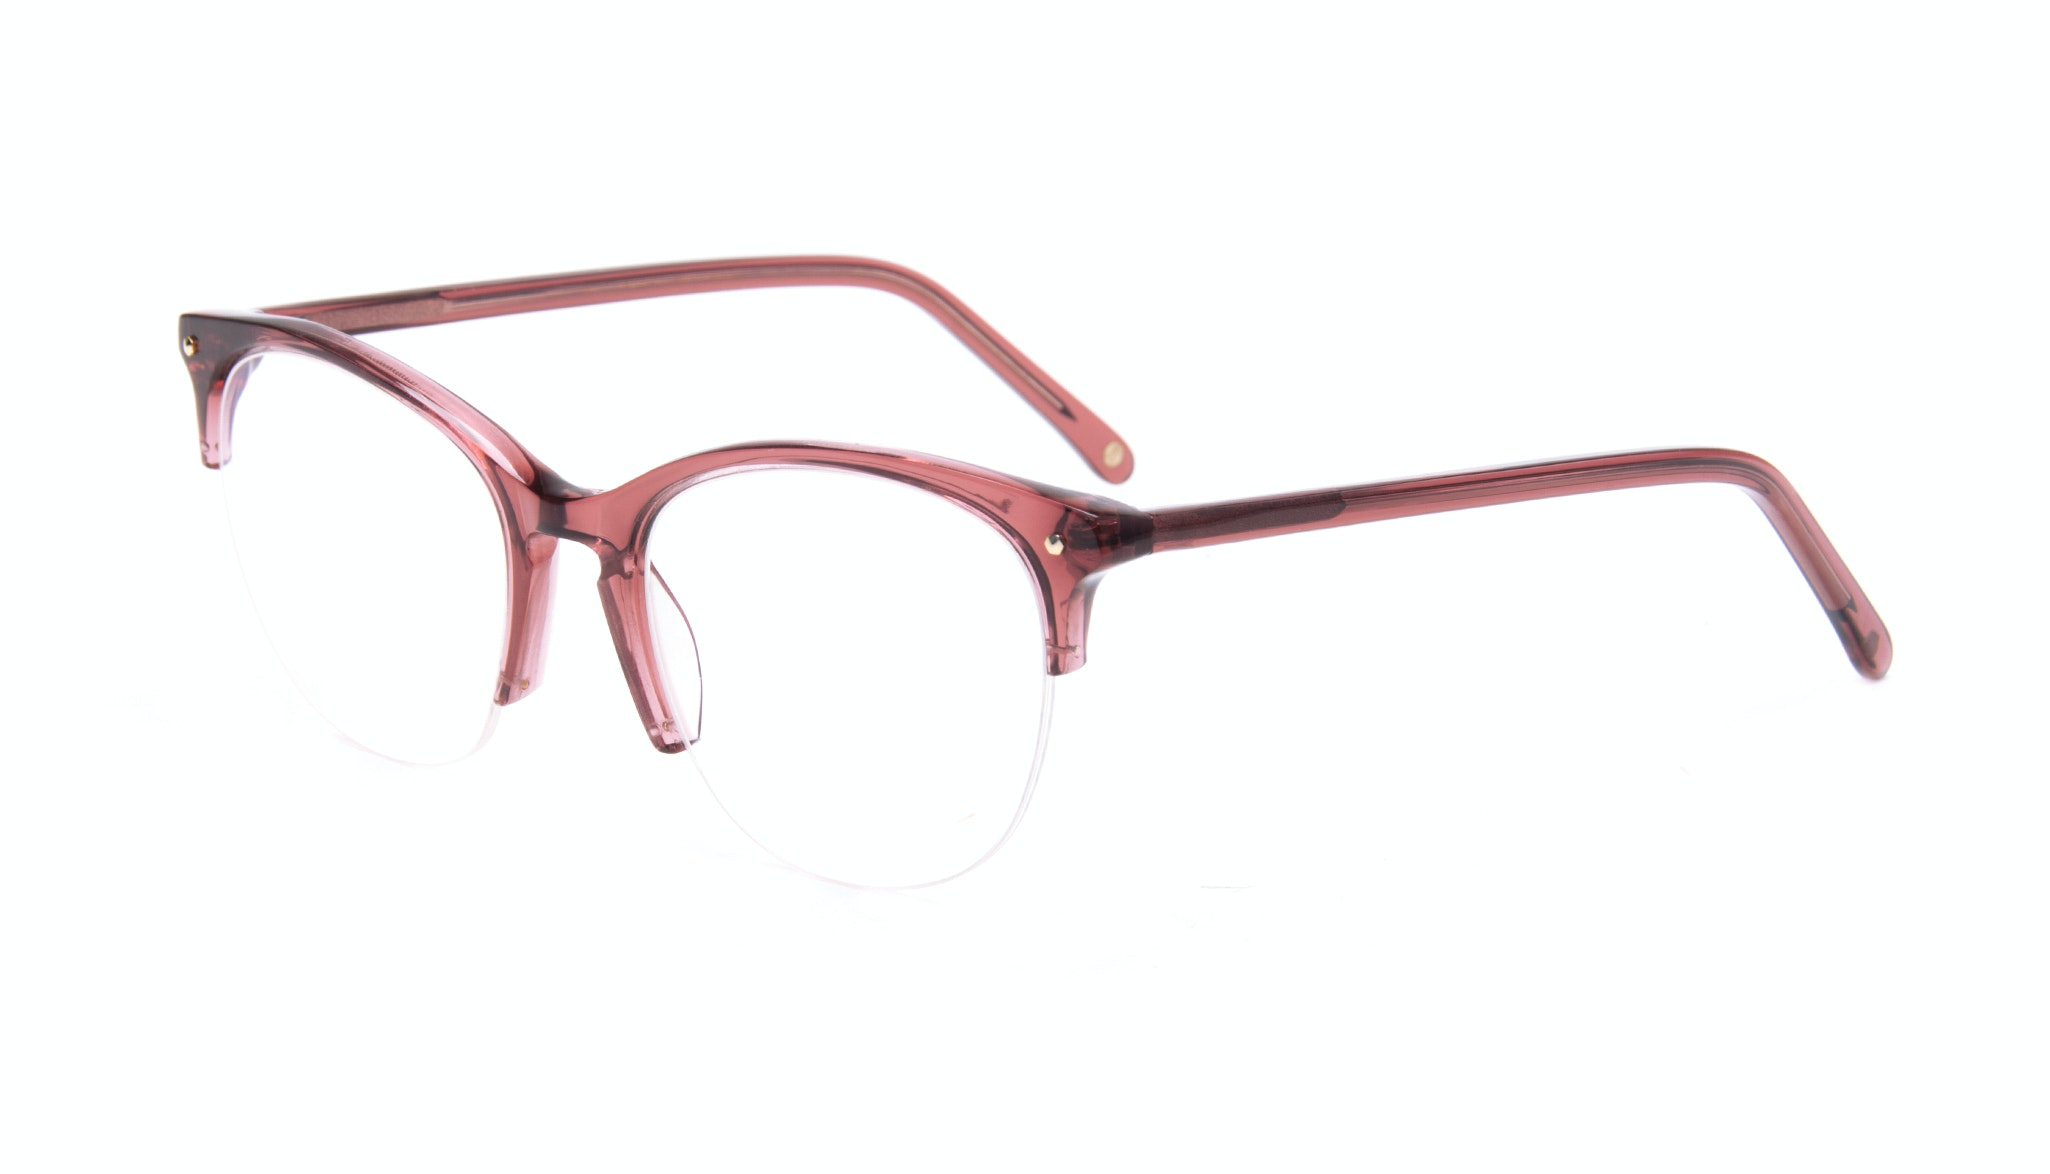 Affordable Fashion Glasses Rectangle Round Eyeglasses Women Nadine Light Winegum Tilt